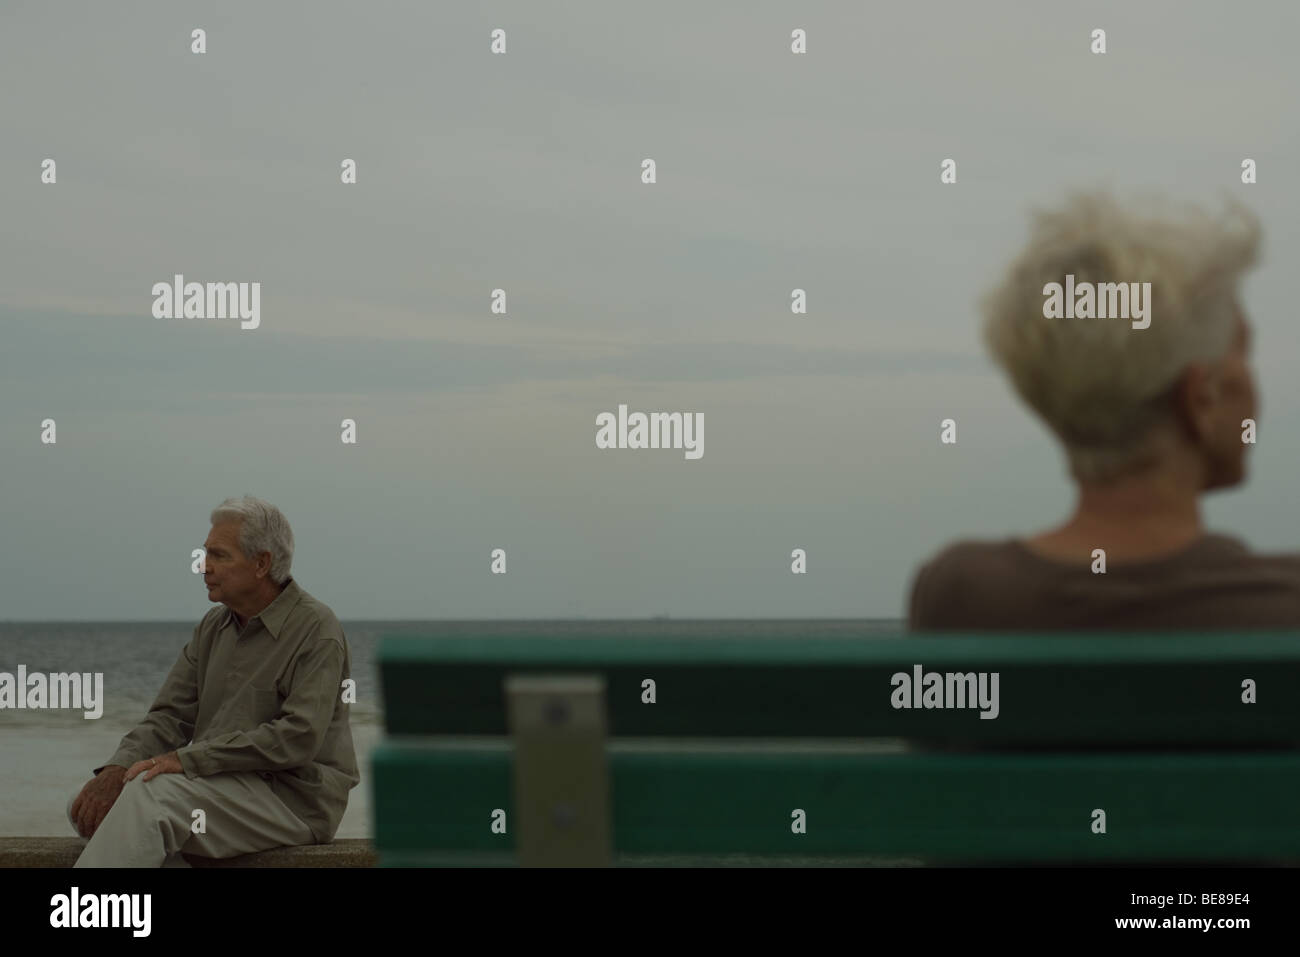 Senior man sitting on bench, looking away, senior woman in foreground - Stock Image